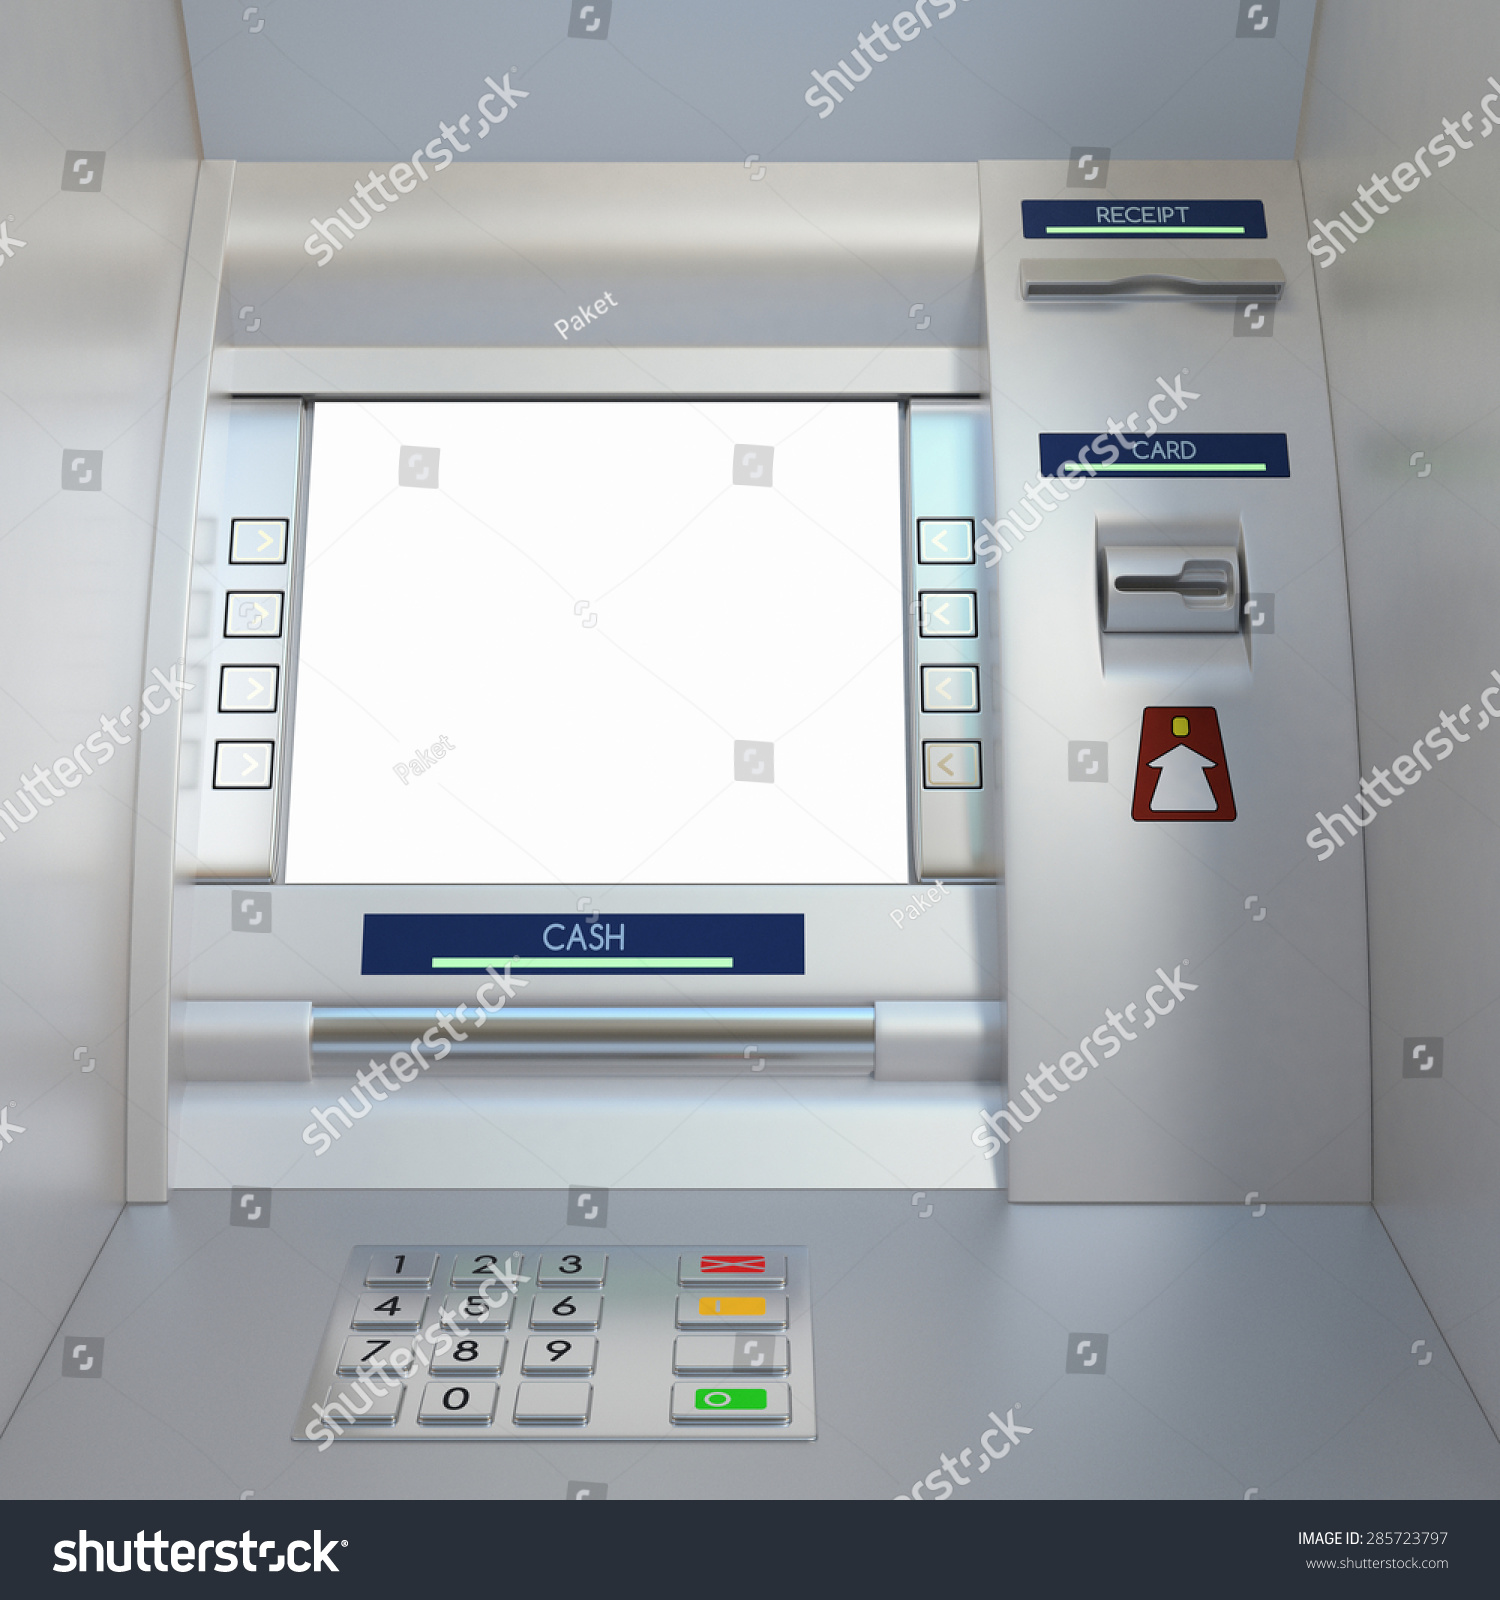 Atm Machine Display Screen Buttons Card Stock Illustration